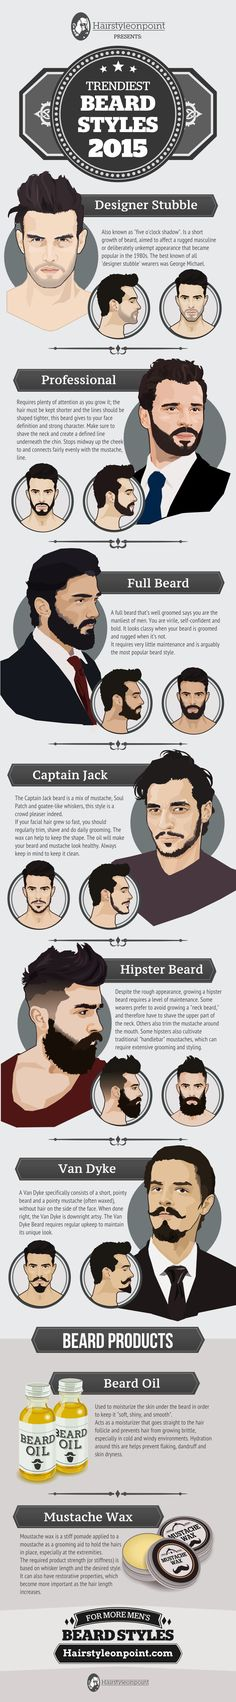 Trendiest Beard Styles 2015 - Imgur More amazing and unique hairstyles at: www.unique-hairstyle.com